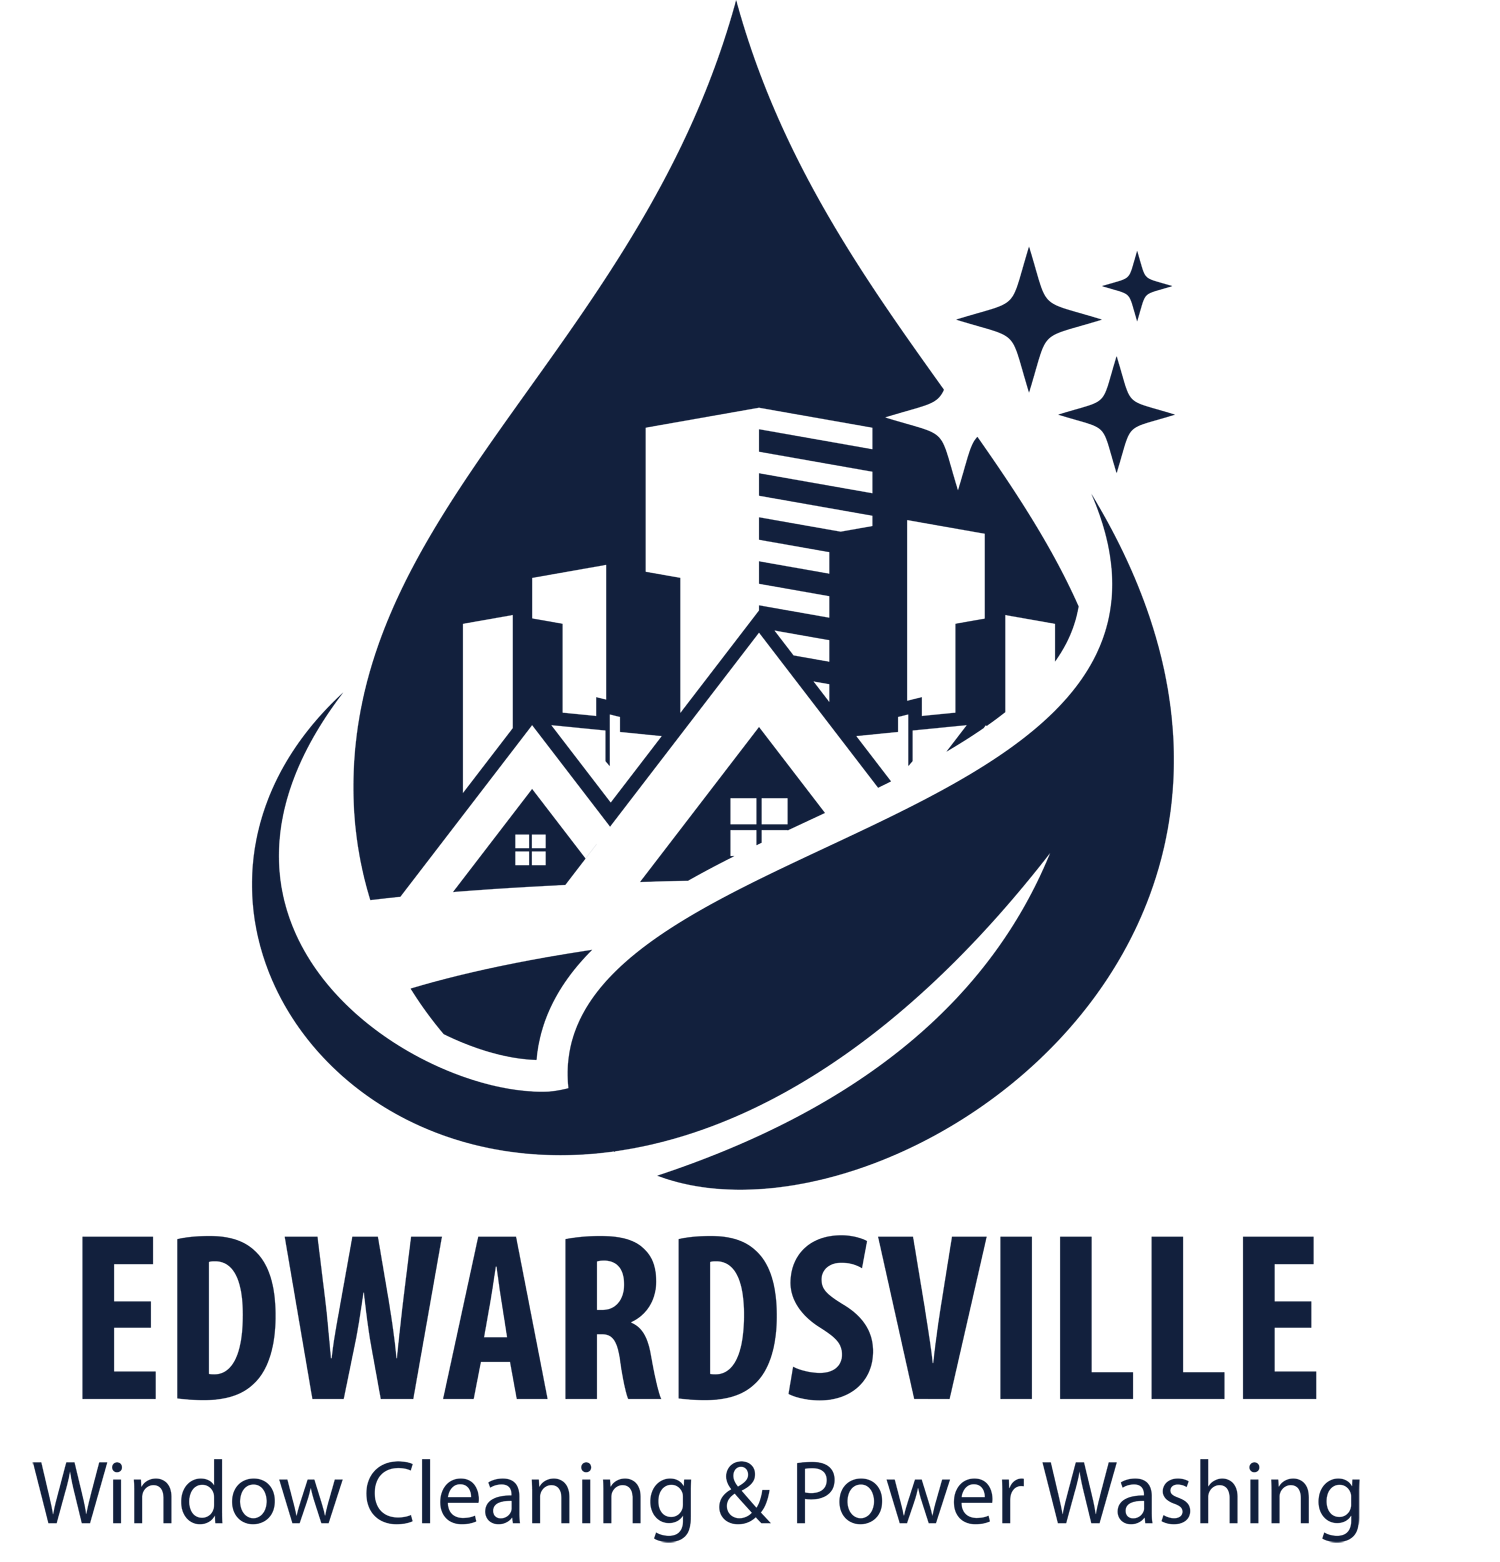 window cleaning pressure washing power wash gutter clean cleaned cleans ceiling fan cleaning chandelier cleaning edwardsville maryville glen carbon illinois troy il